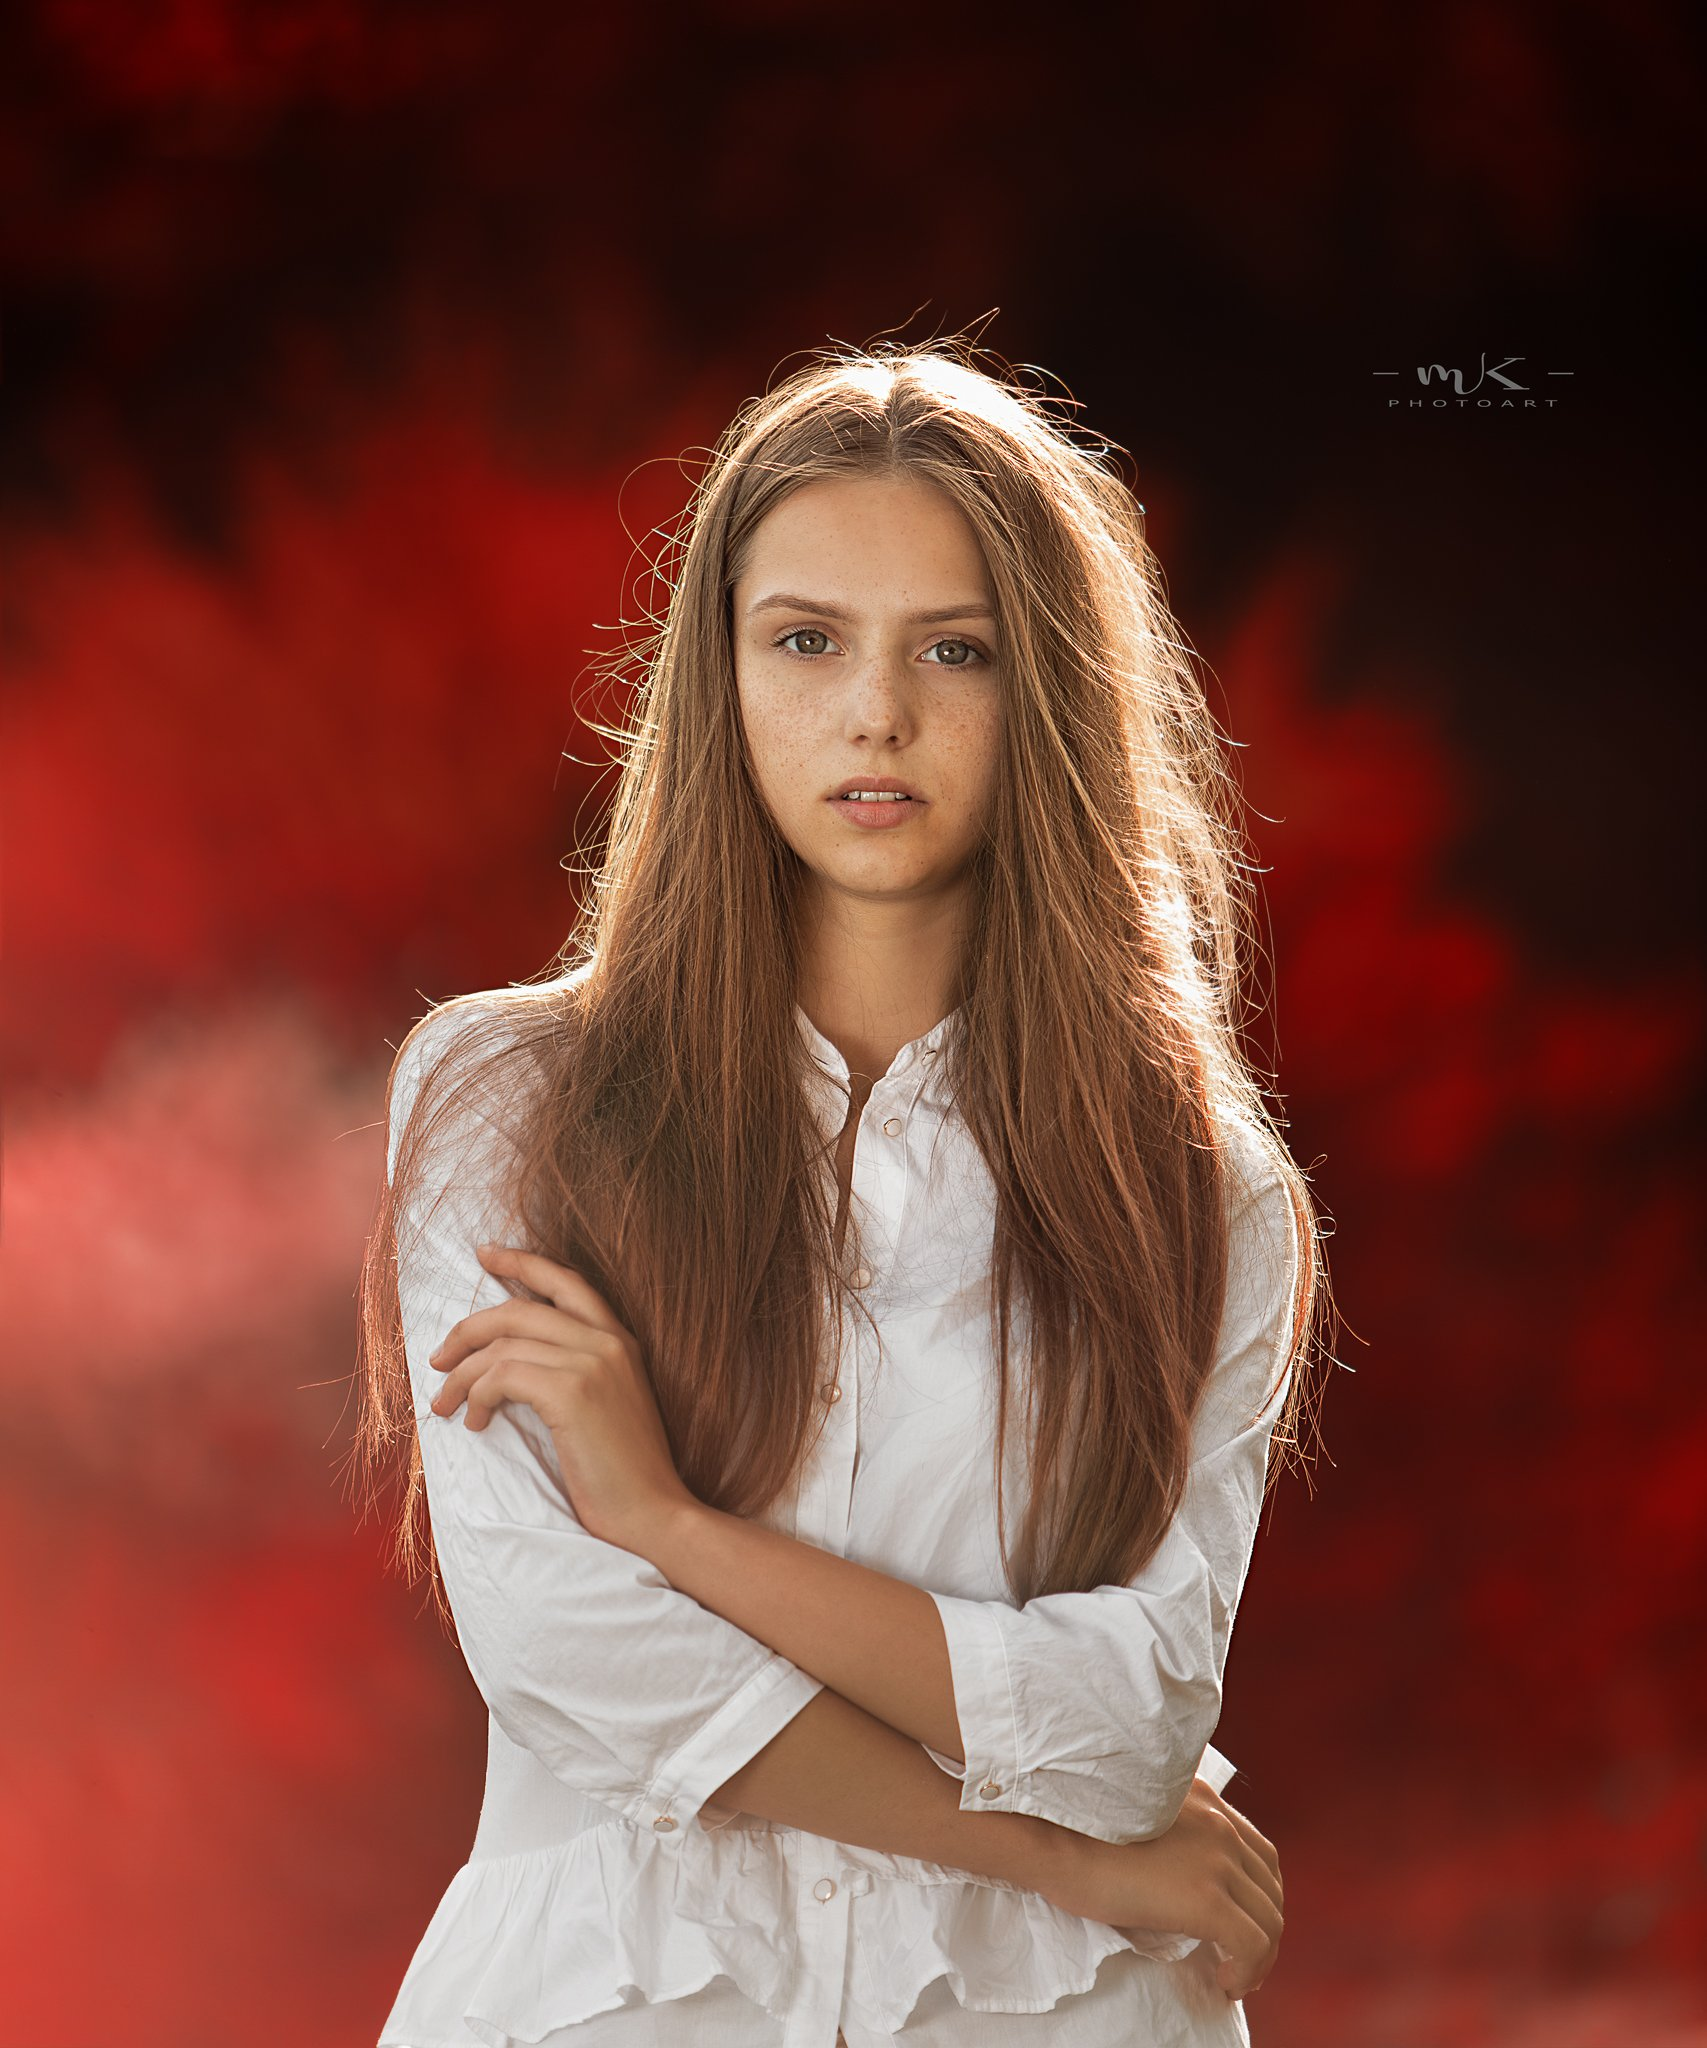 model,lady,portrait, Marius Kalinauskas